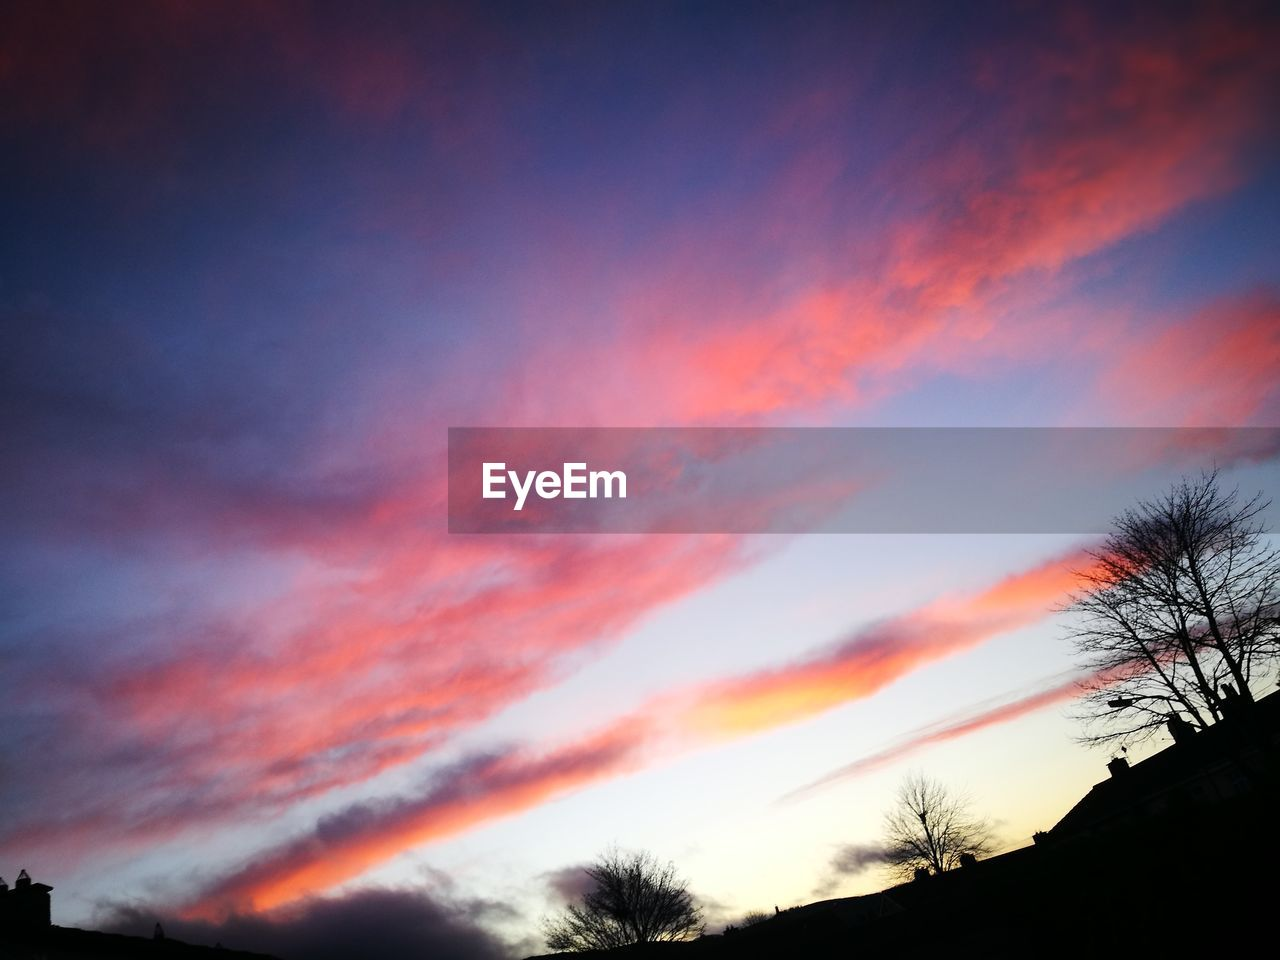 sky, cloud - sky, sunset, beauty in nature, low angle view, scenics - nature, silhouette, orange color, tree, tranquility, tranquil scene, no people, nature, plant, idyllic, outdoors, dramatic sky, dusk, red, romantic sky